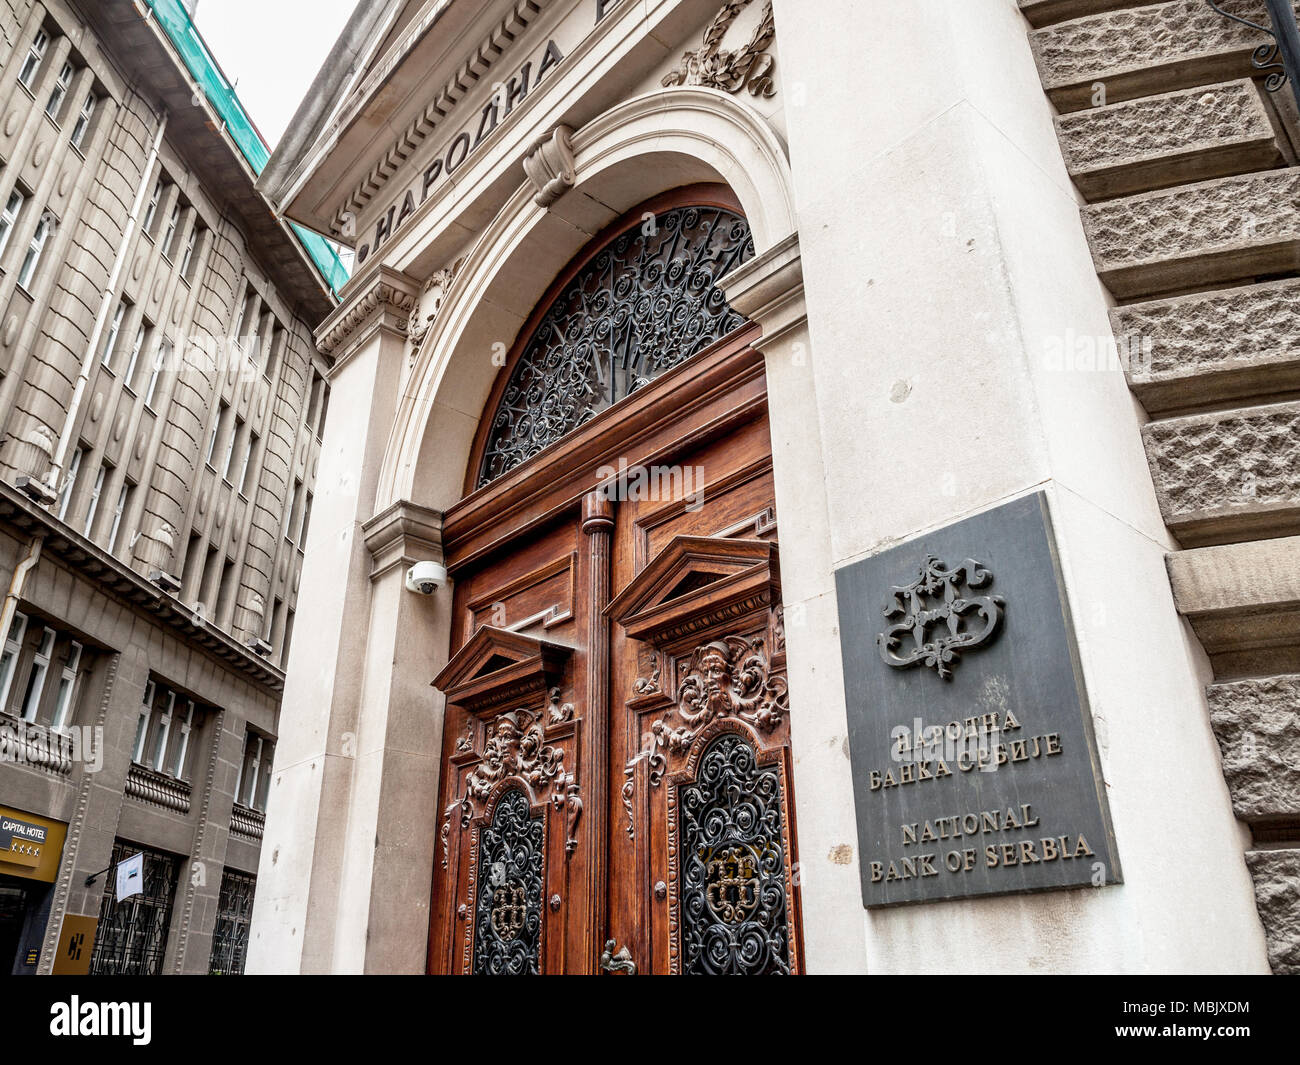 BELGRADE, SERBIA - MARCH 31, 2018: Main entrance to the National Bank of Serbia (NBS, Narodna Banka Srbije), the central bank of the country  Picture  - Stock Image